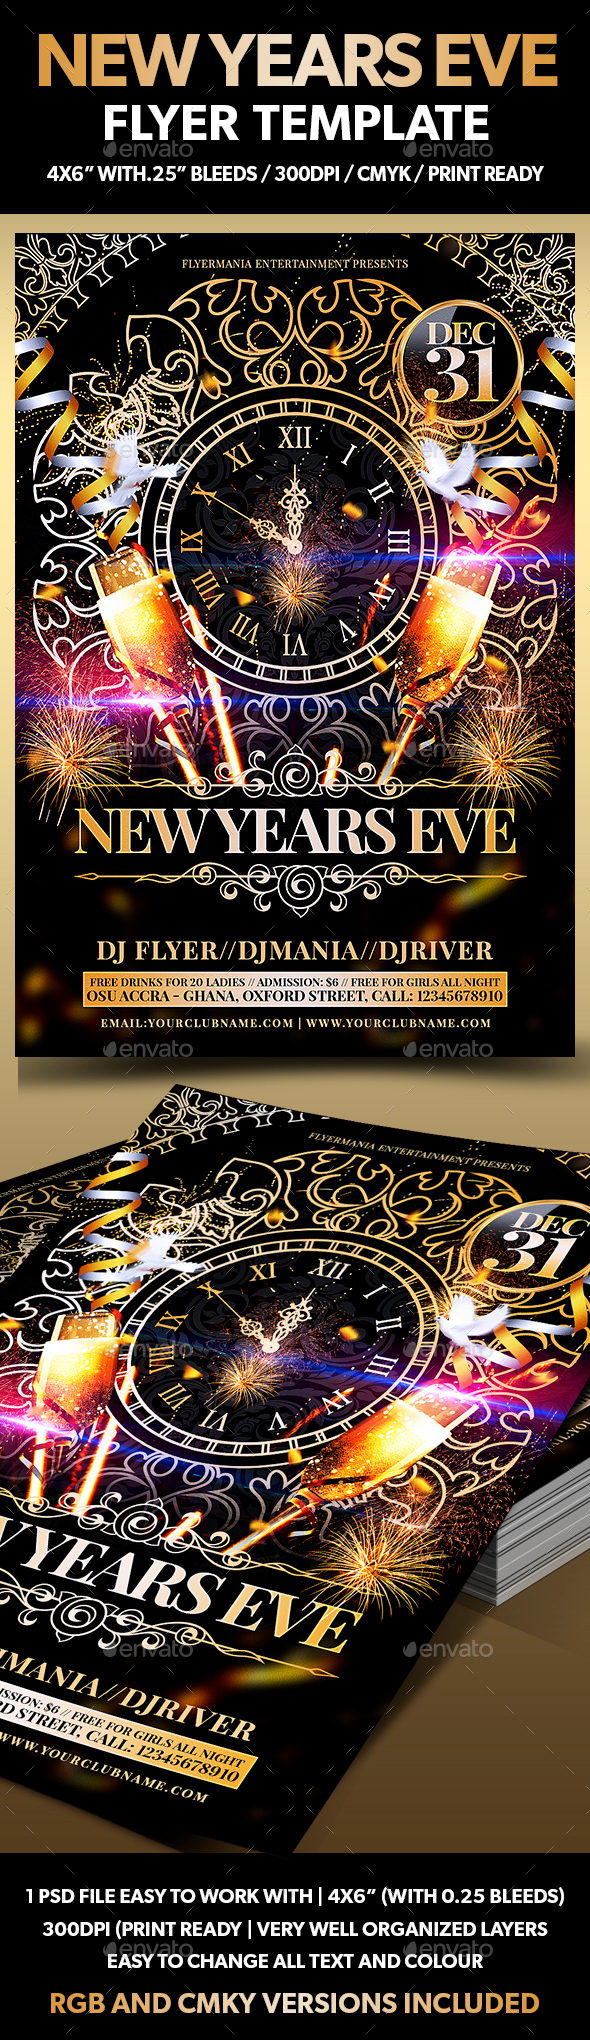 New Years Eve Flyer Template - Holidays Events